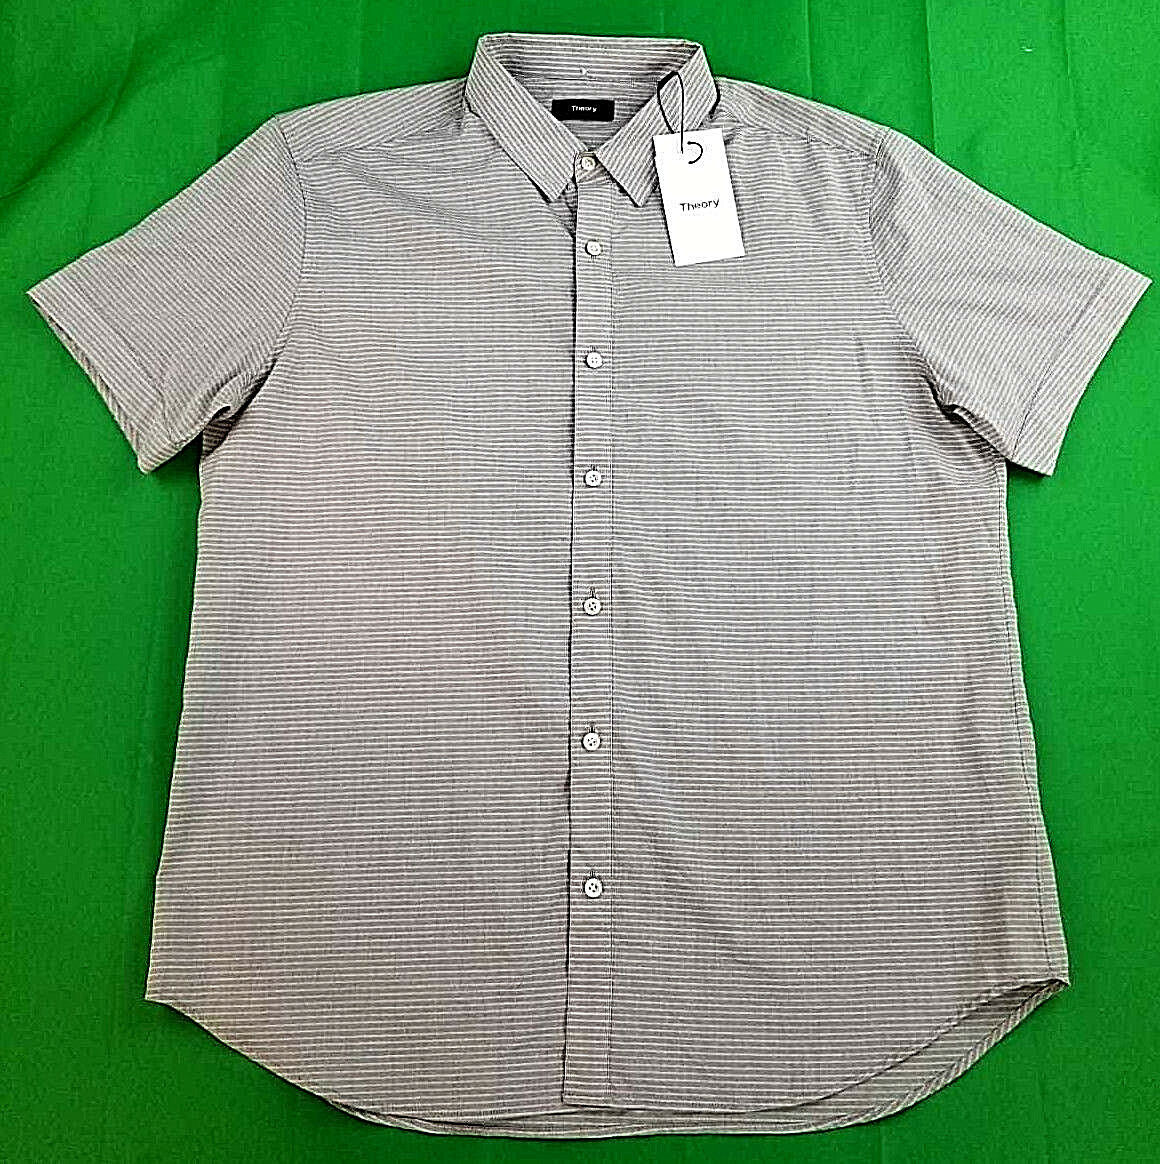 New THEORY men shirt Coppolo Ash Liam I064506R grey XL MSRP